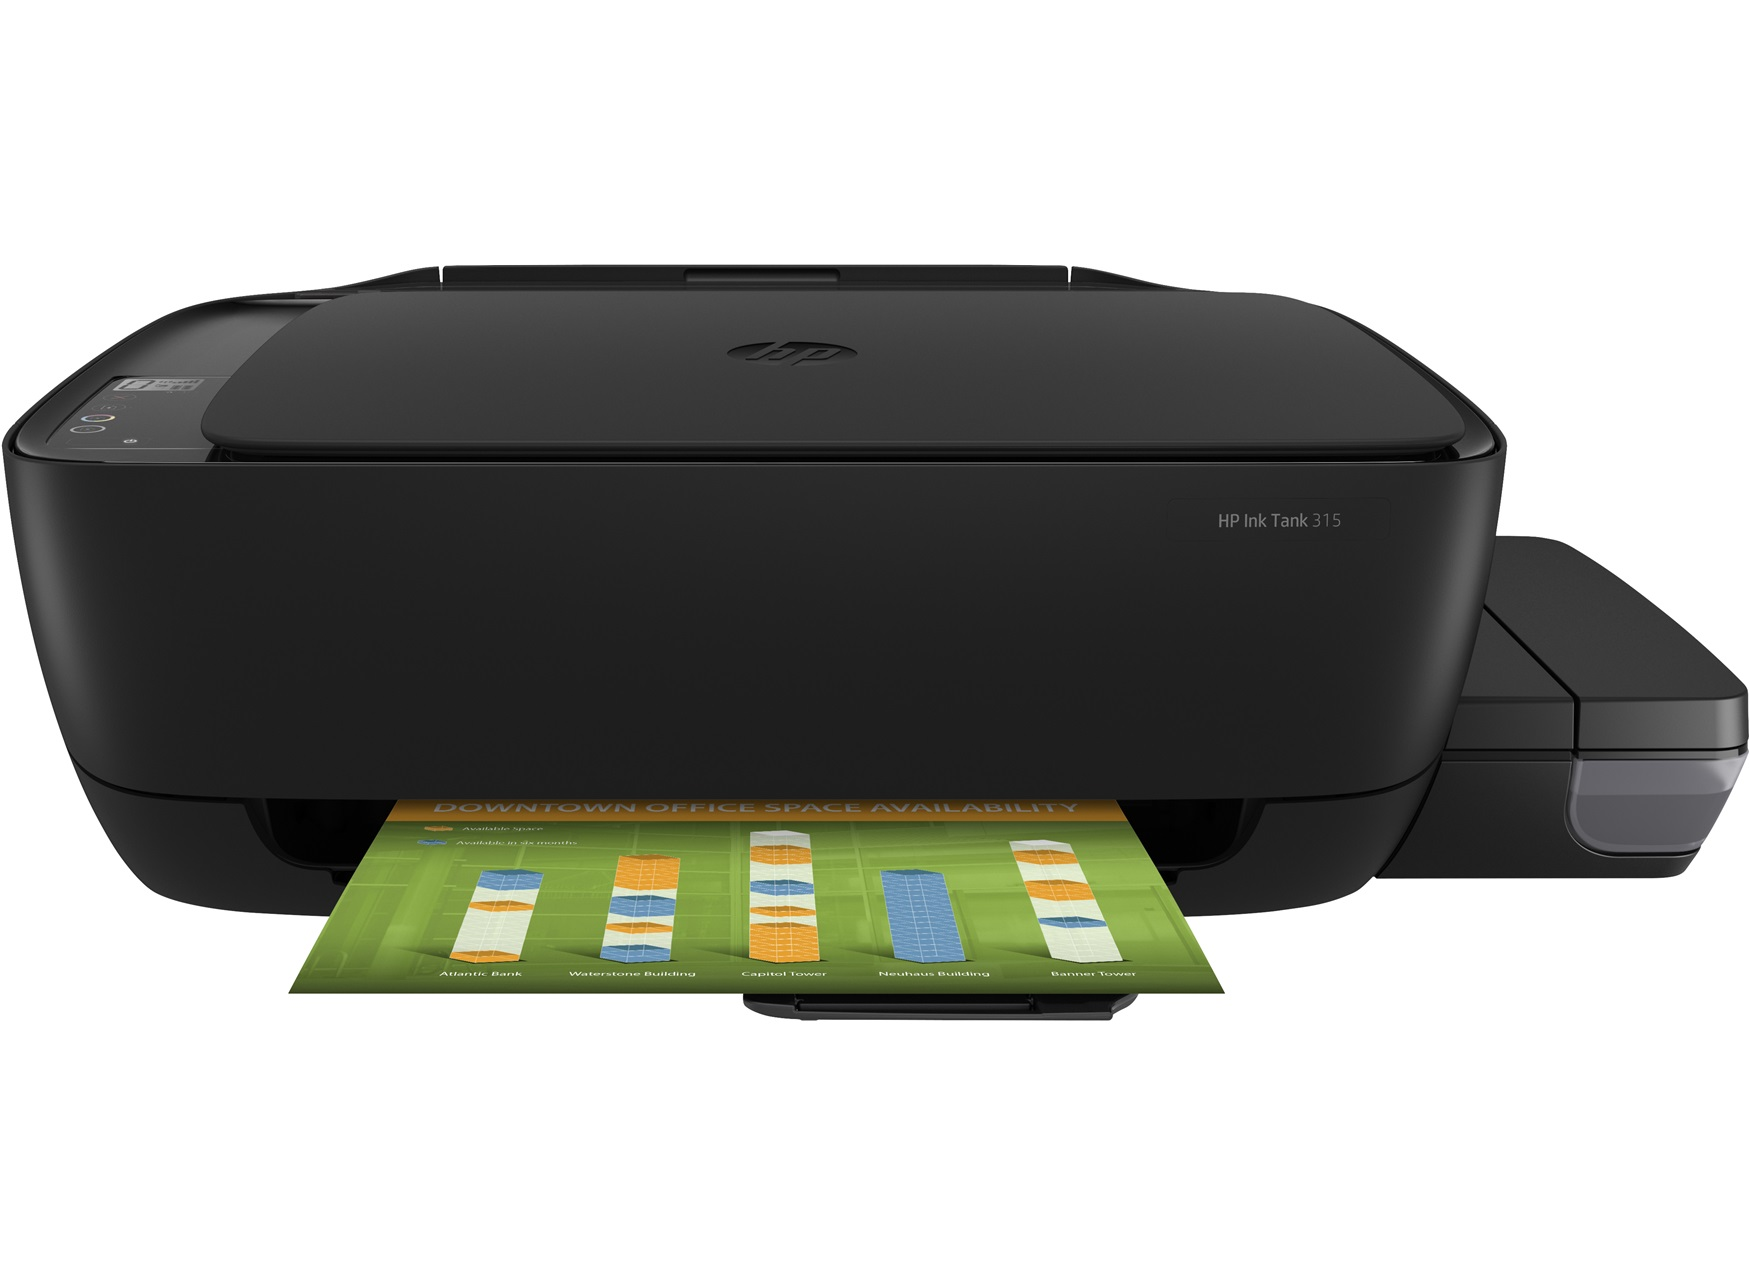 HP 315 All-in-One Ink Tank Multifunction Printer